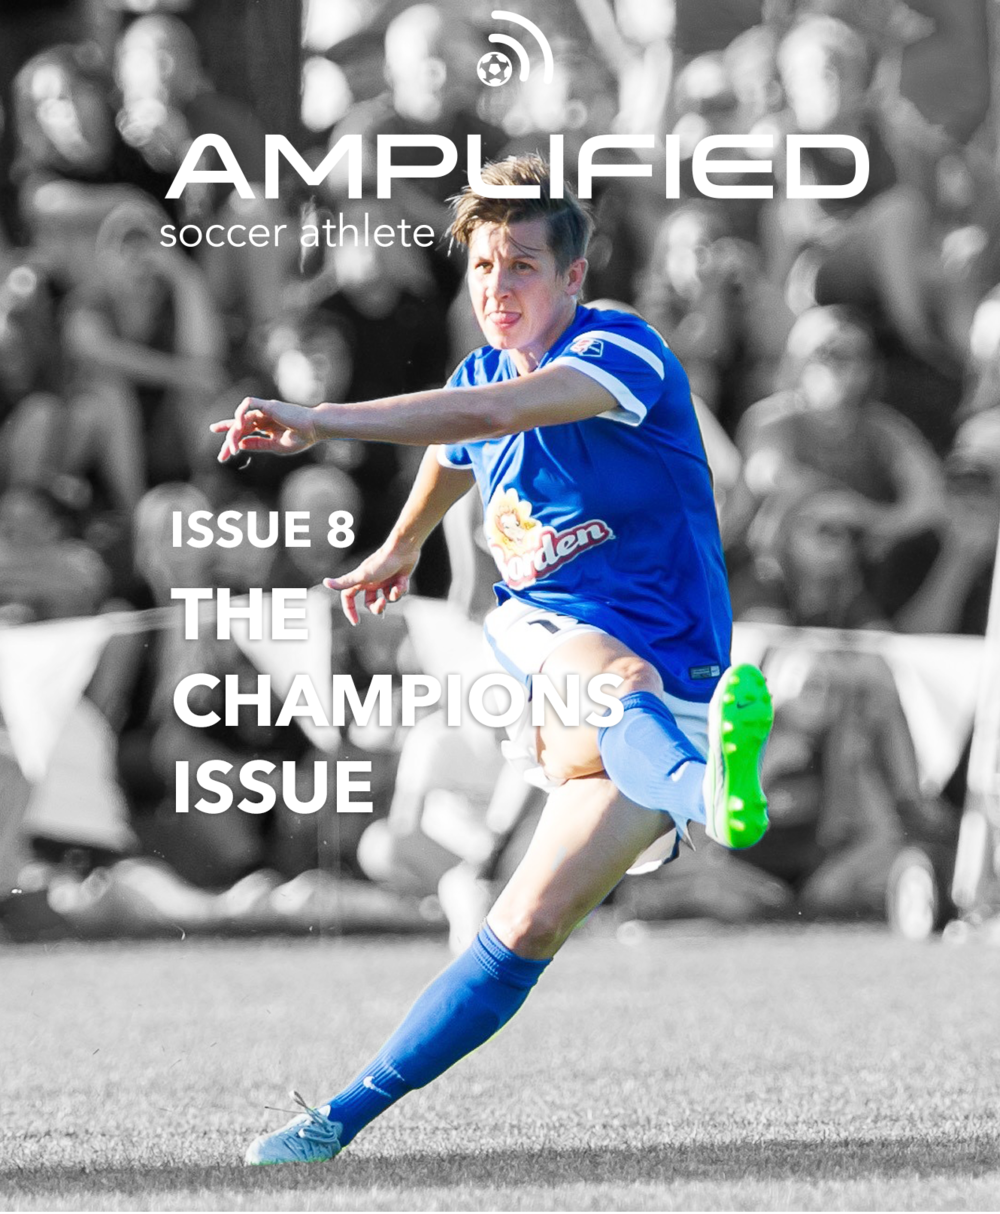 amplified soccer athlete issue 8 cover